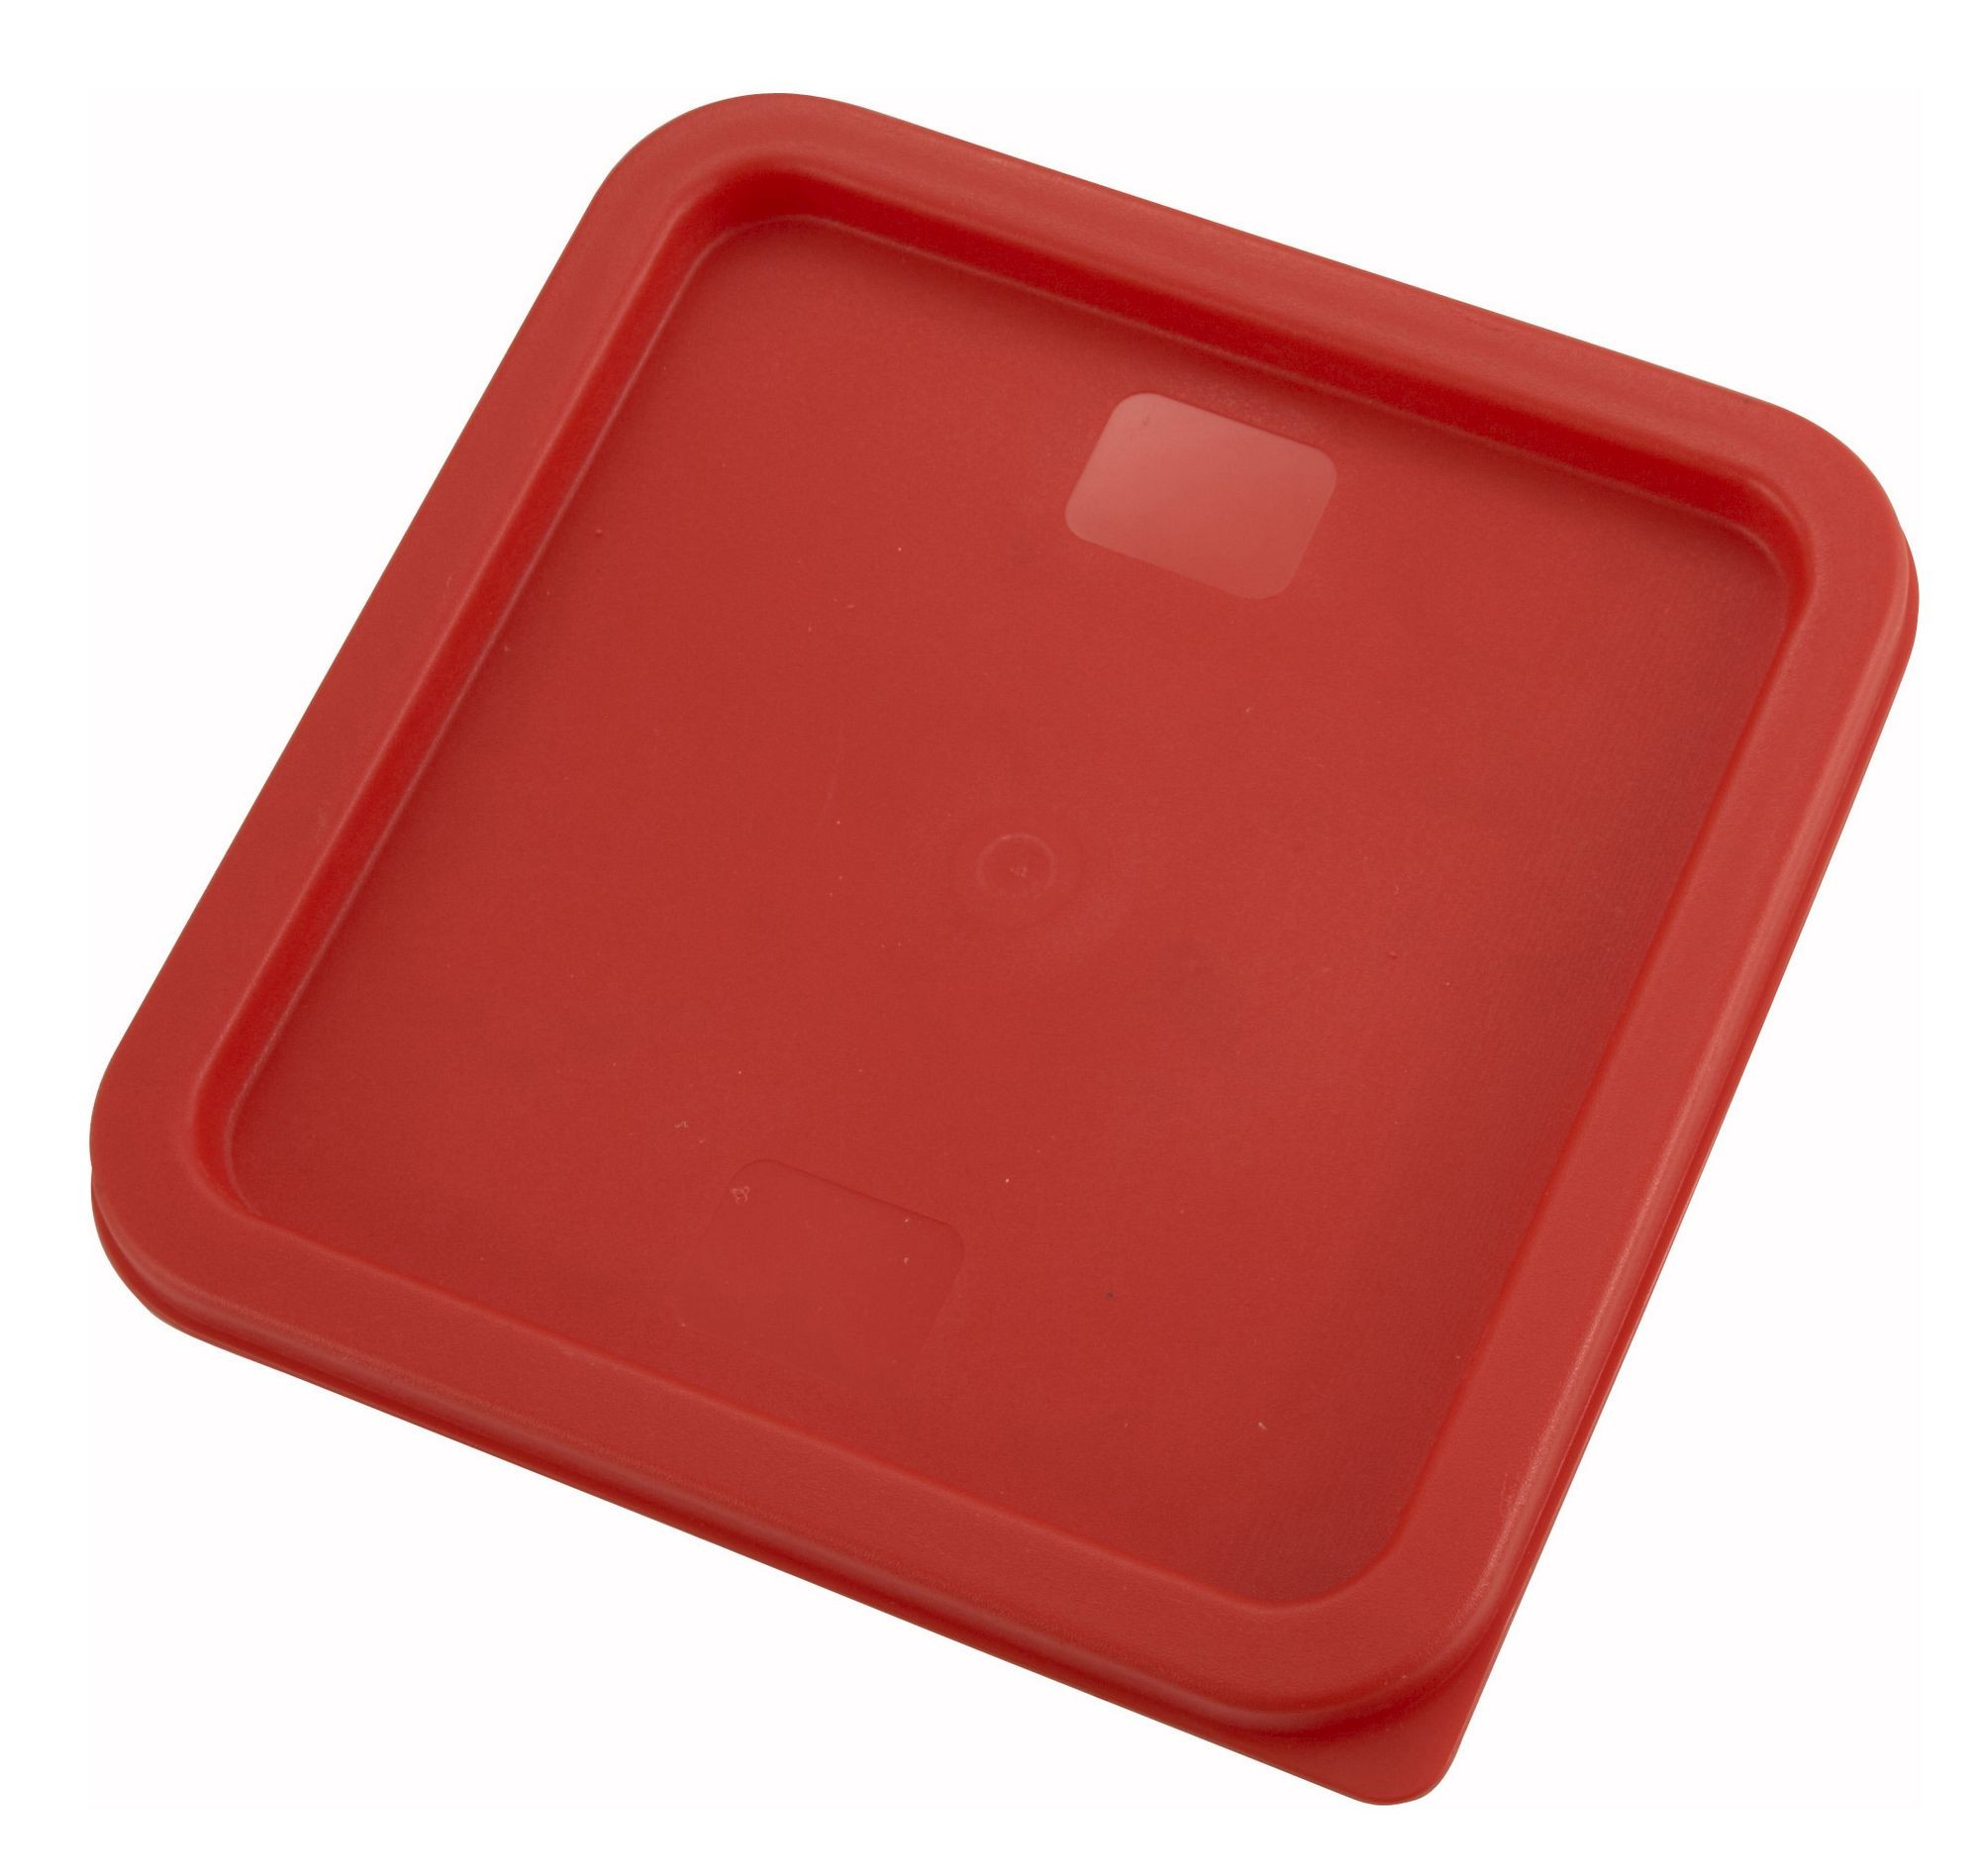 Winco PECC-68 Red Container Cover fits 6 and 8 Qt. Square Containers